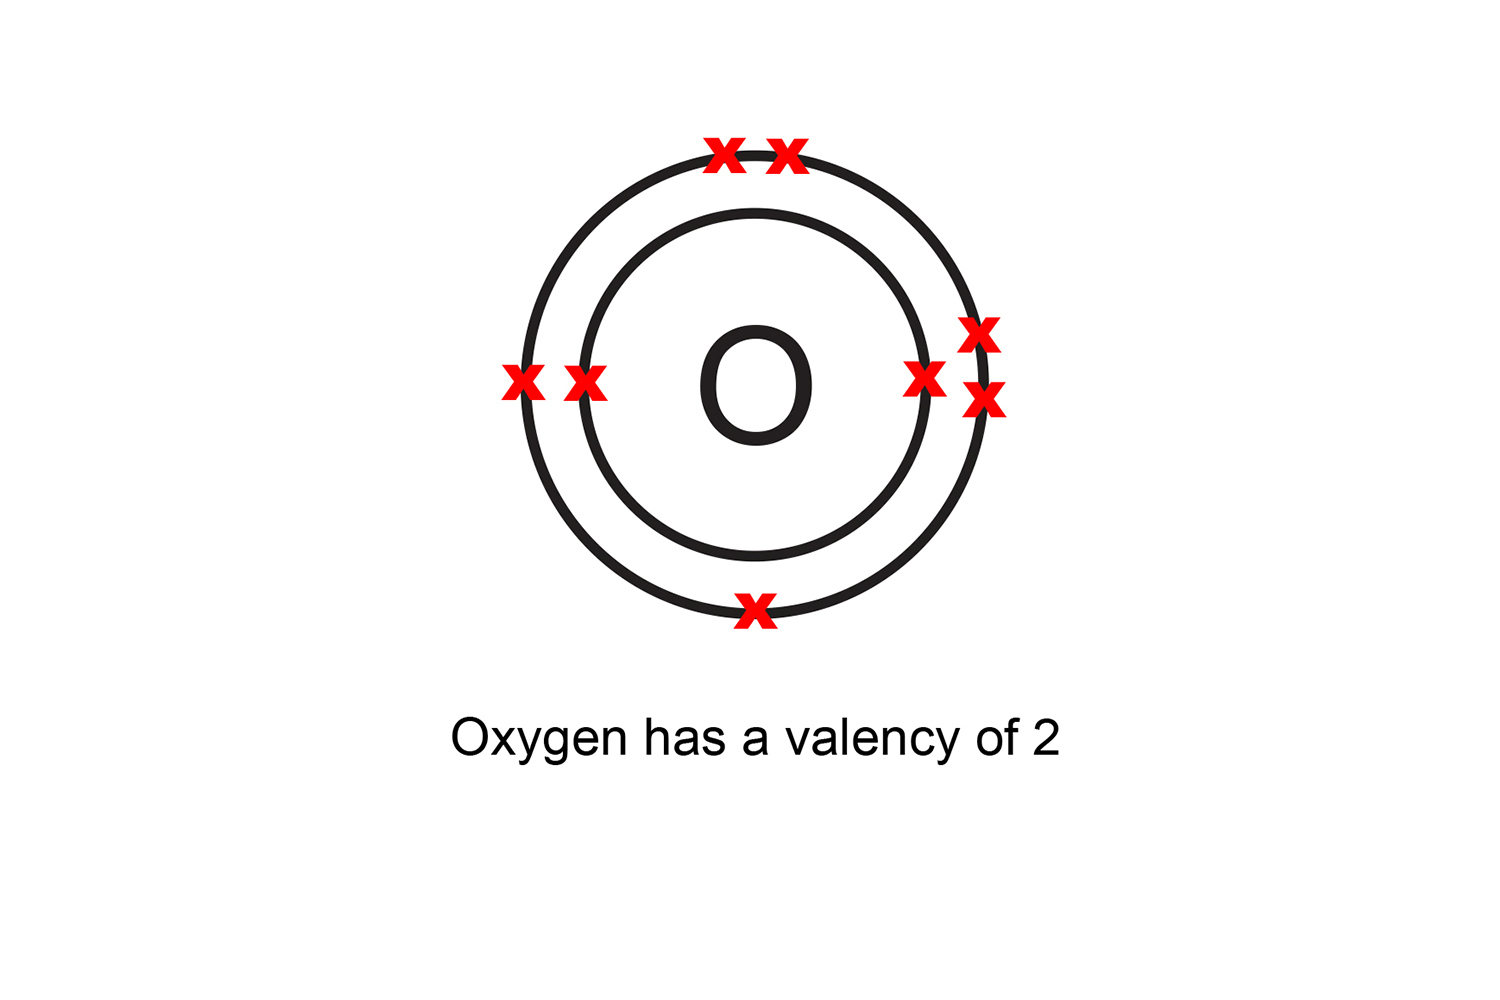 Oxygen has six electrons in its outer shell if an atom has more than 4 electrons in its outer shell it is 8 minus the number in its outer shell there fore oxygen has a valency of 2